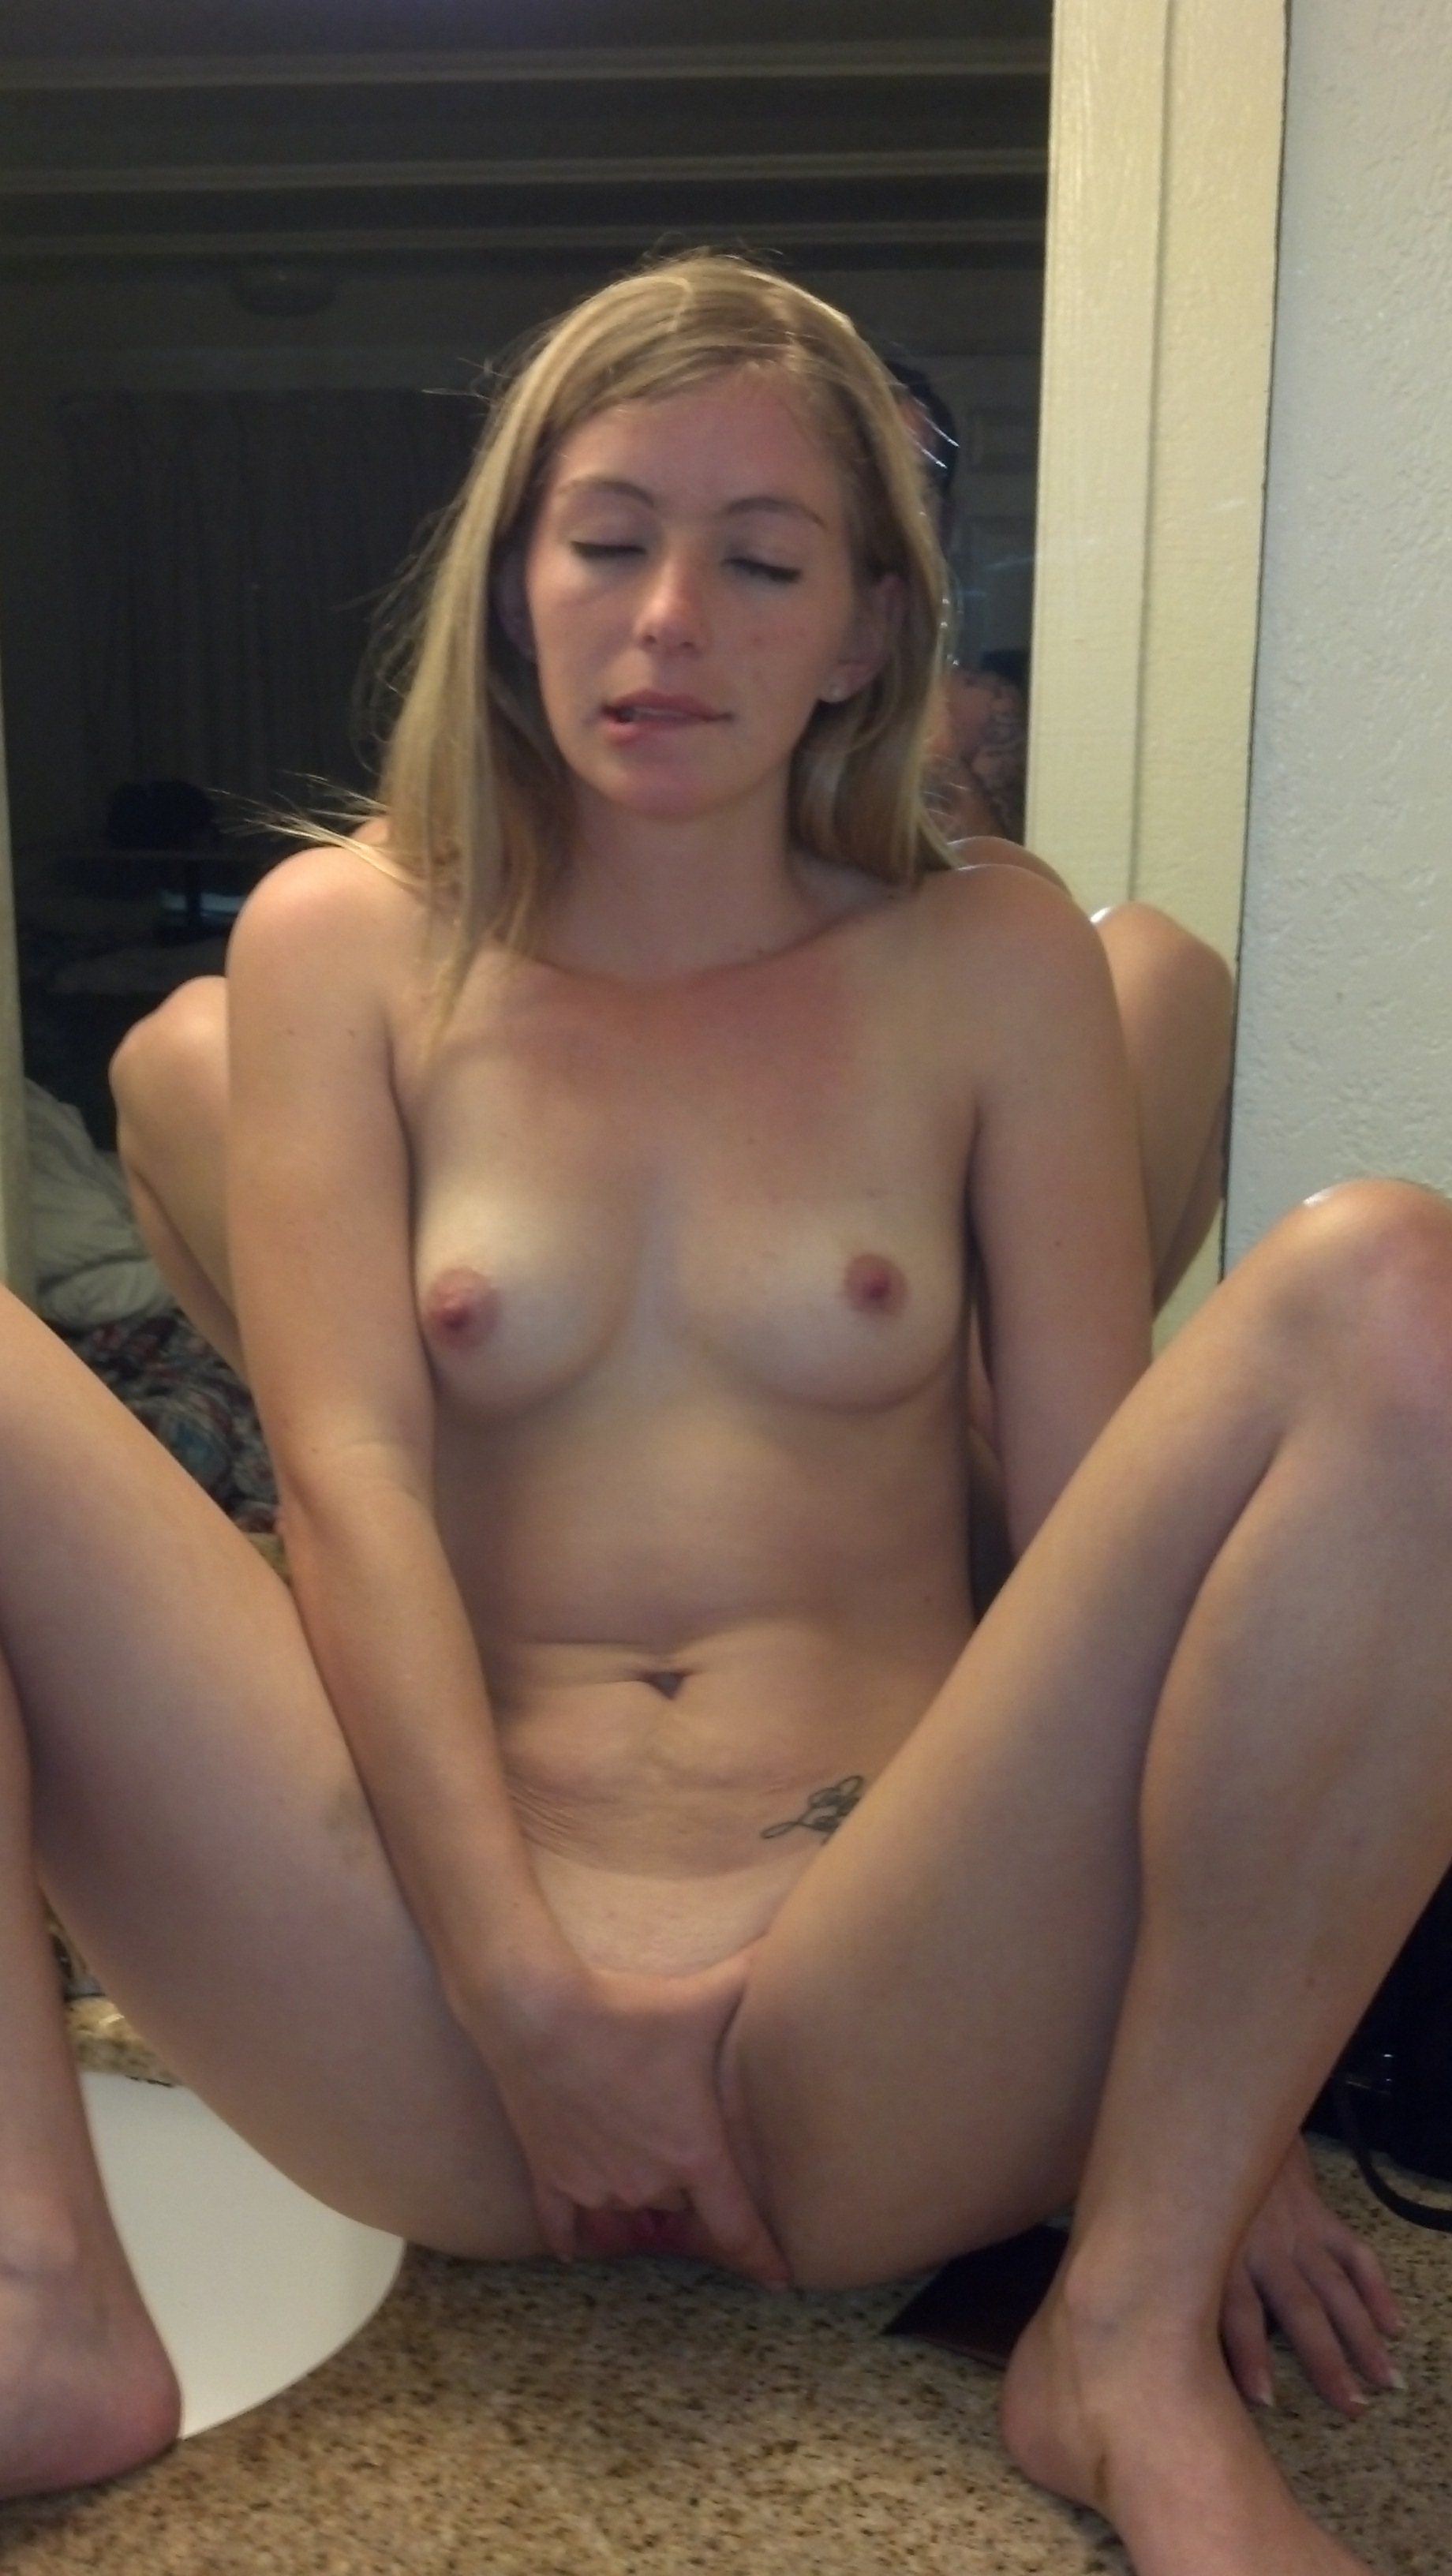 Sexy naked amateur girl pussy